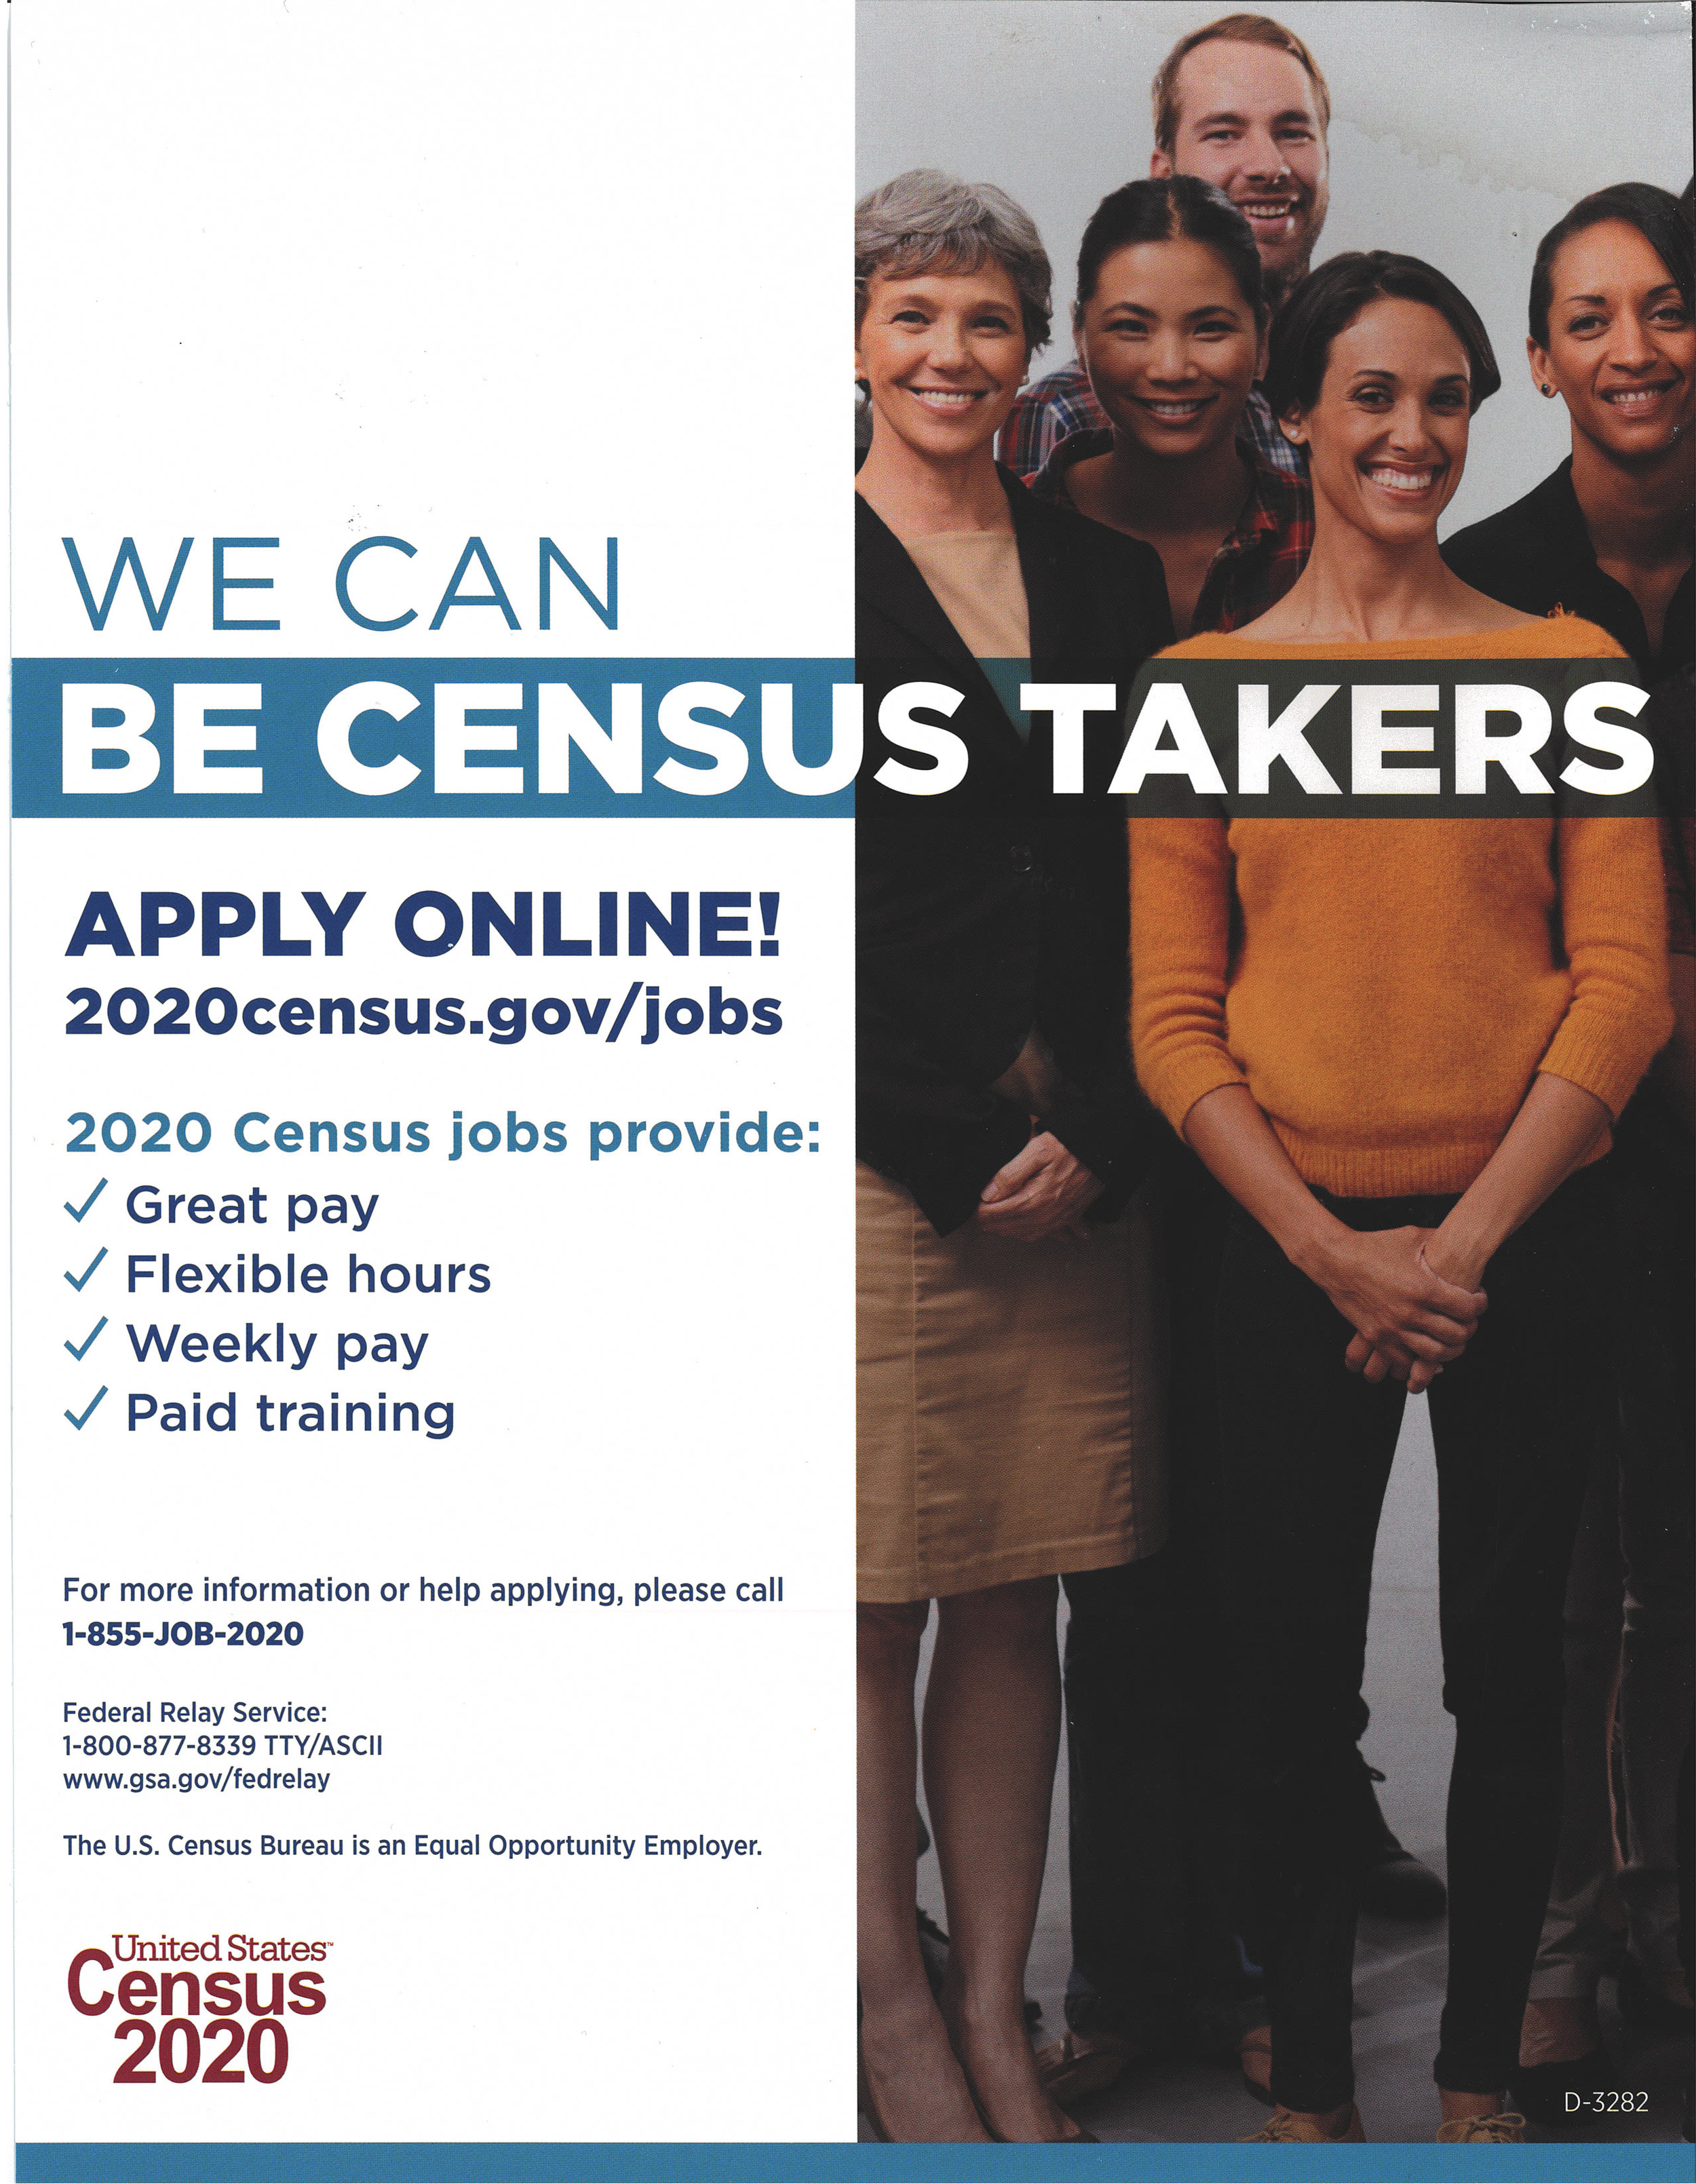 Be a Census Taker!! - No Resume, No Interview, apply Online at 2020census.gov/jobs